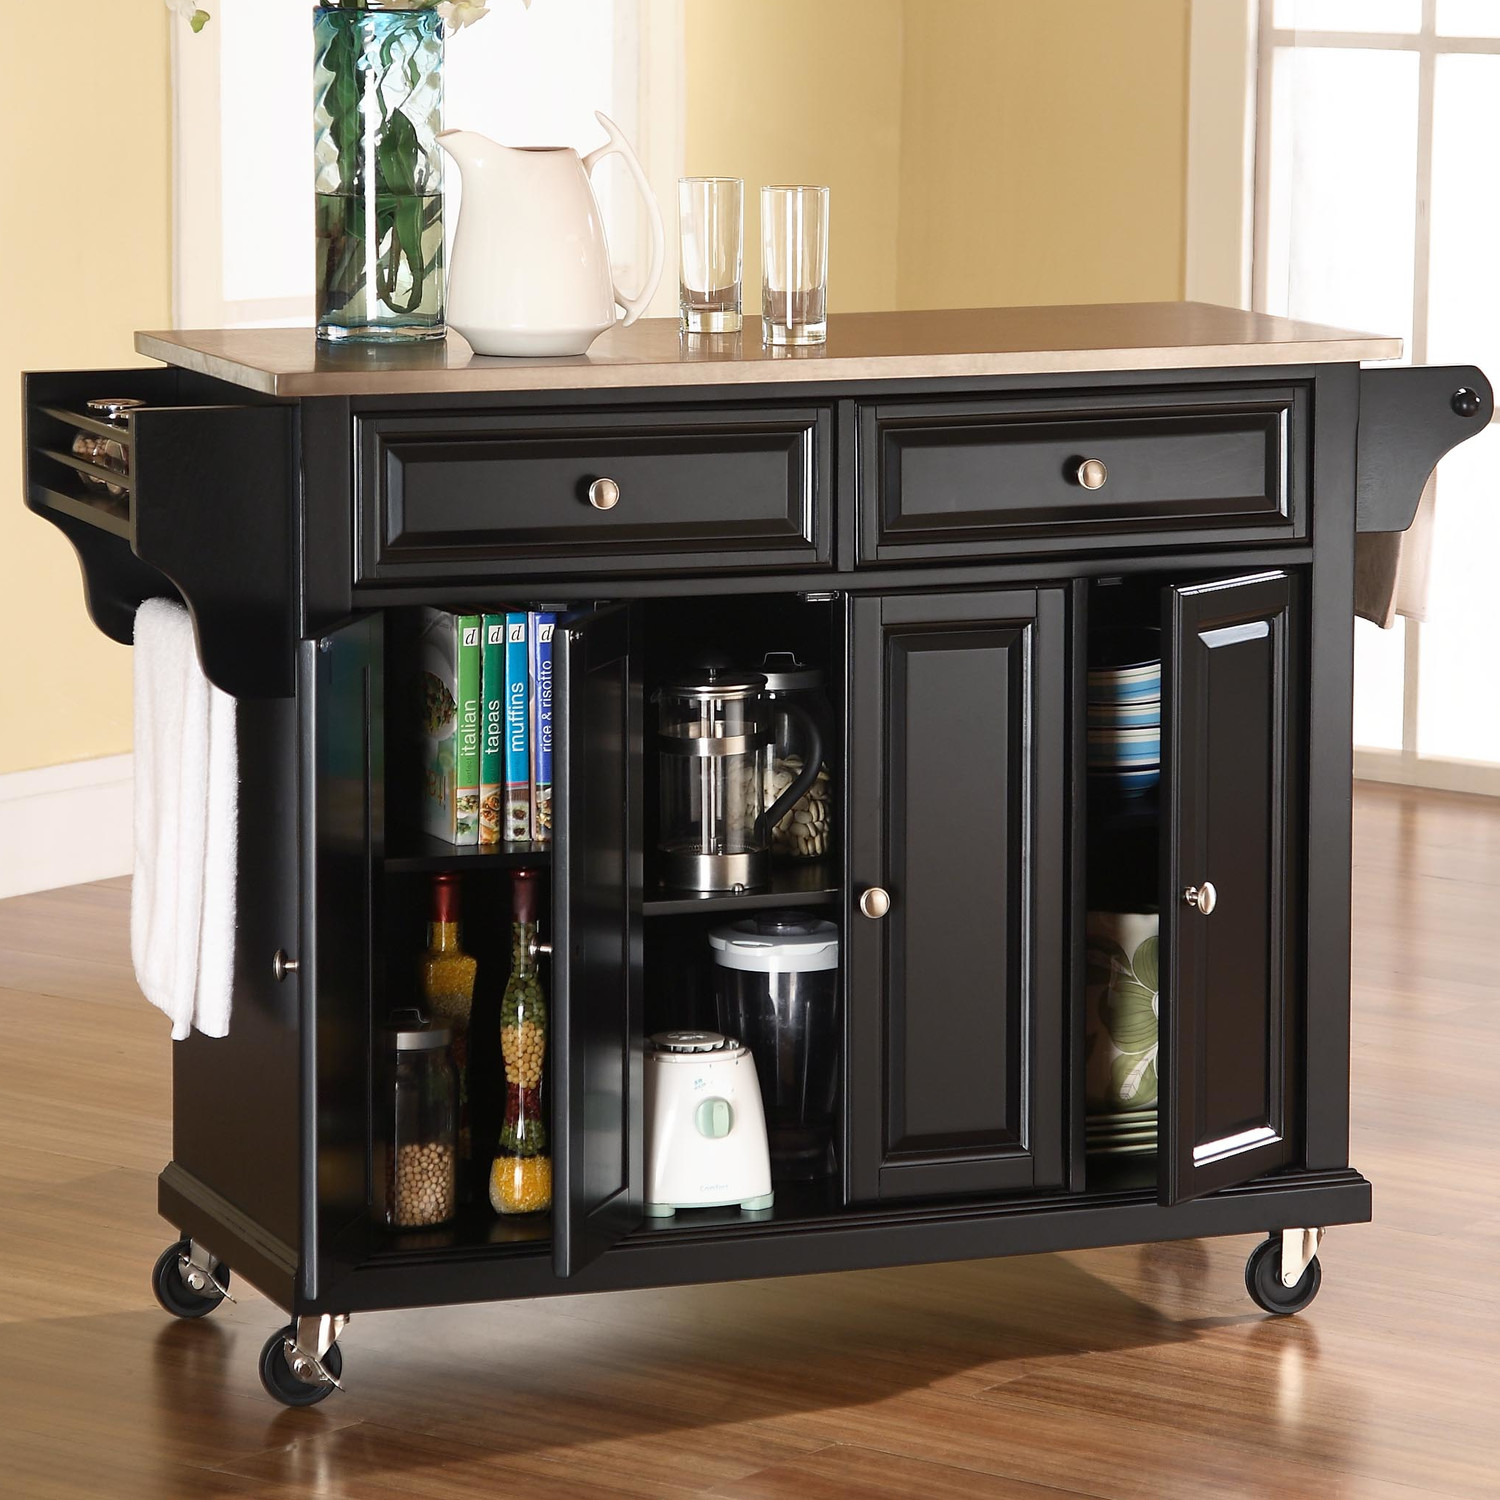 Beau Dark Wooden Kitchen Islands With Storage Place